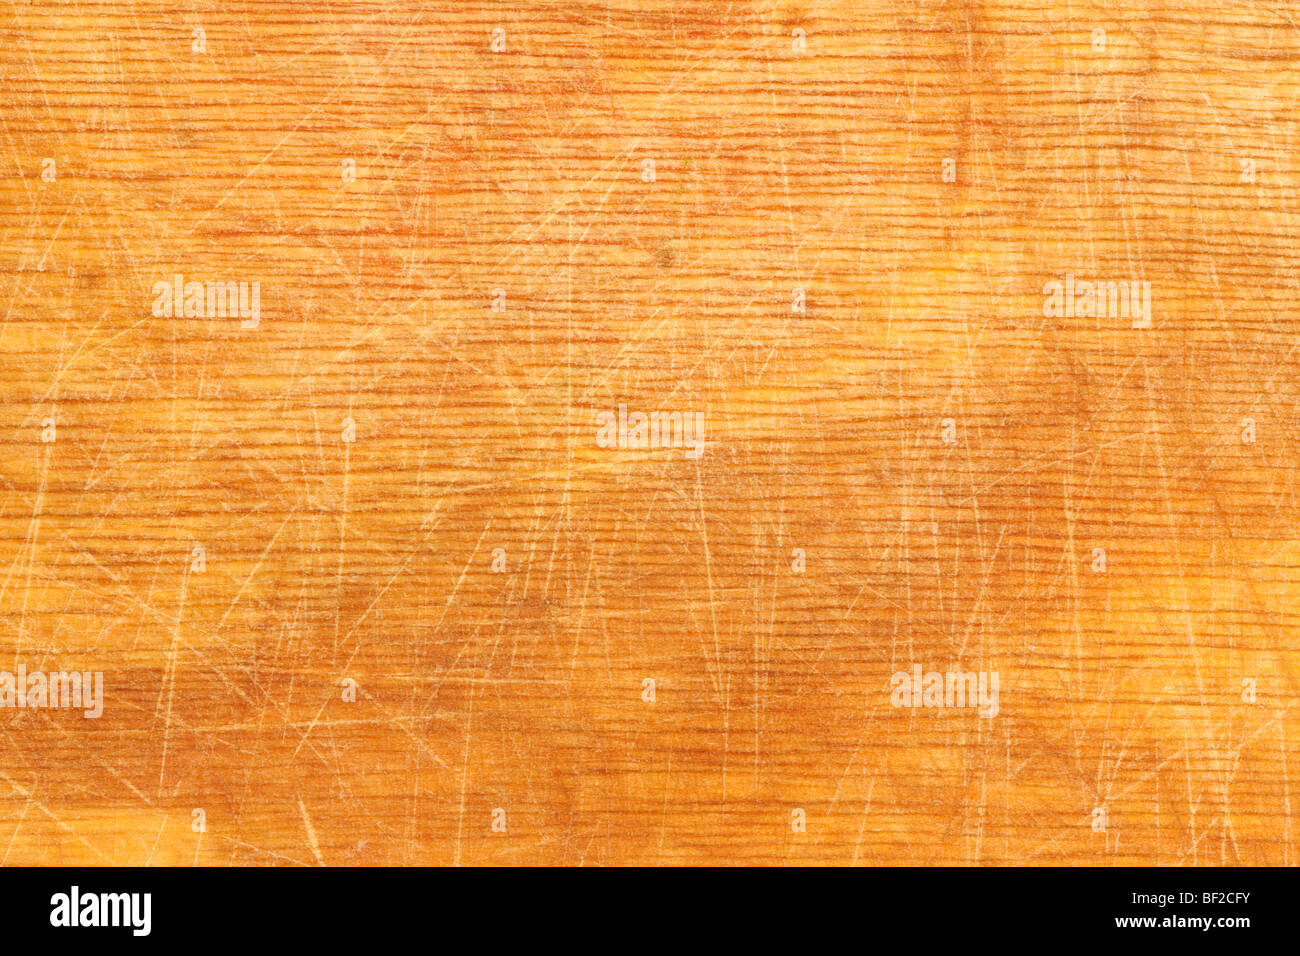 Well-used wood chopping board providing good texture for backgrounds - Stock Image